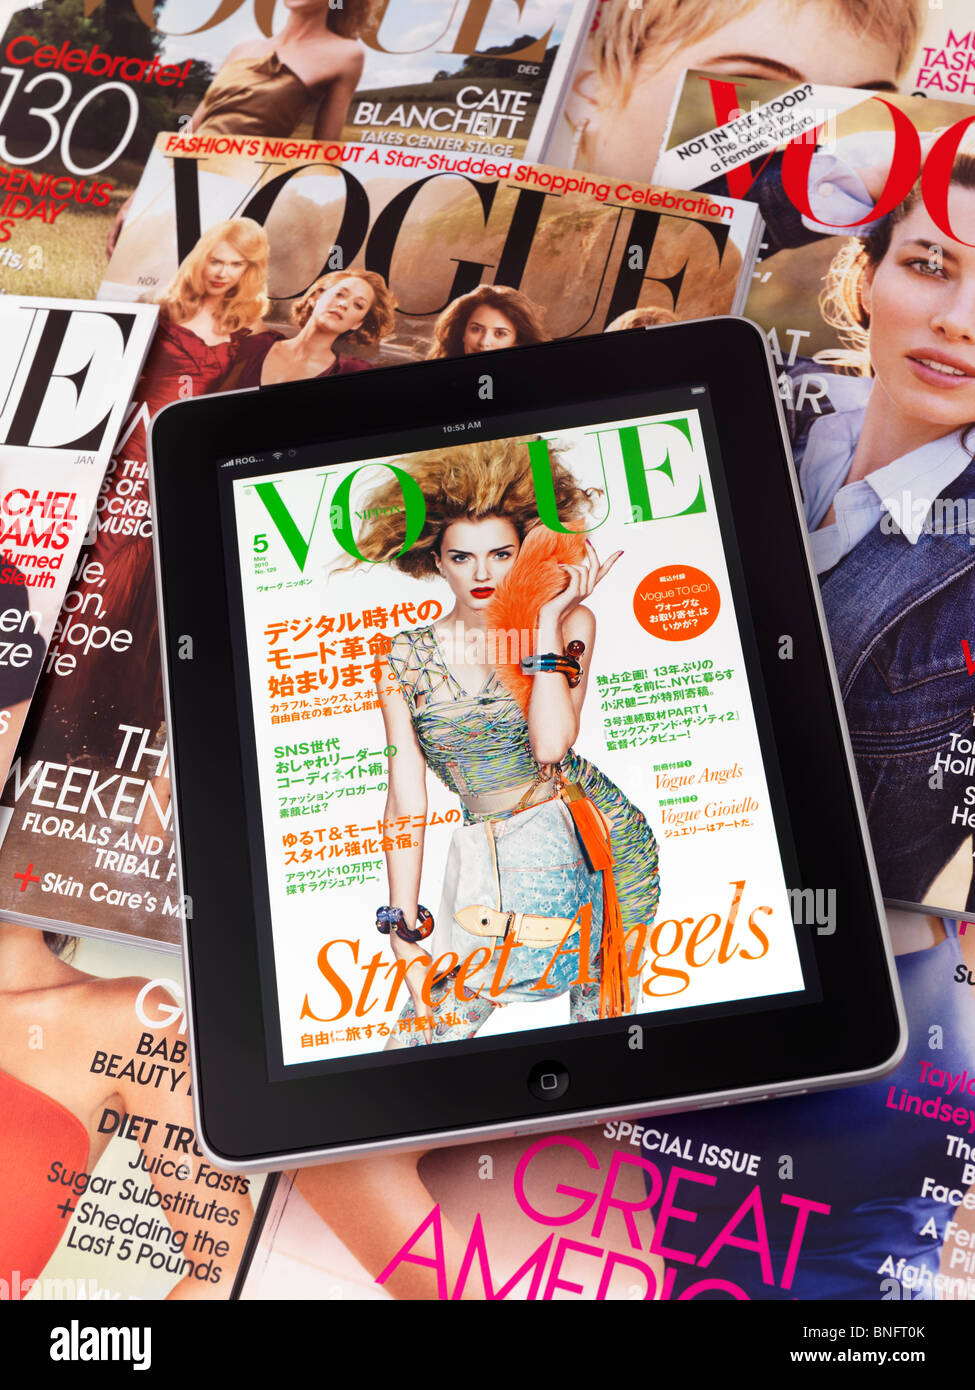 Tablette Apple iPad 3G avec un numéro électronique de Vogue située au-dessus de magazines Vogue fashion Photo Stock